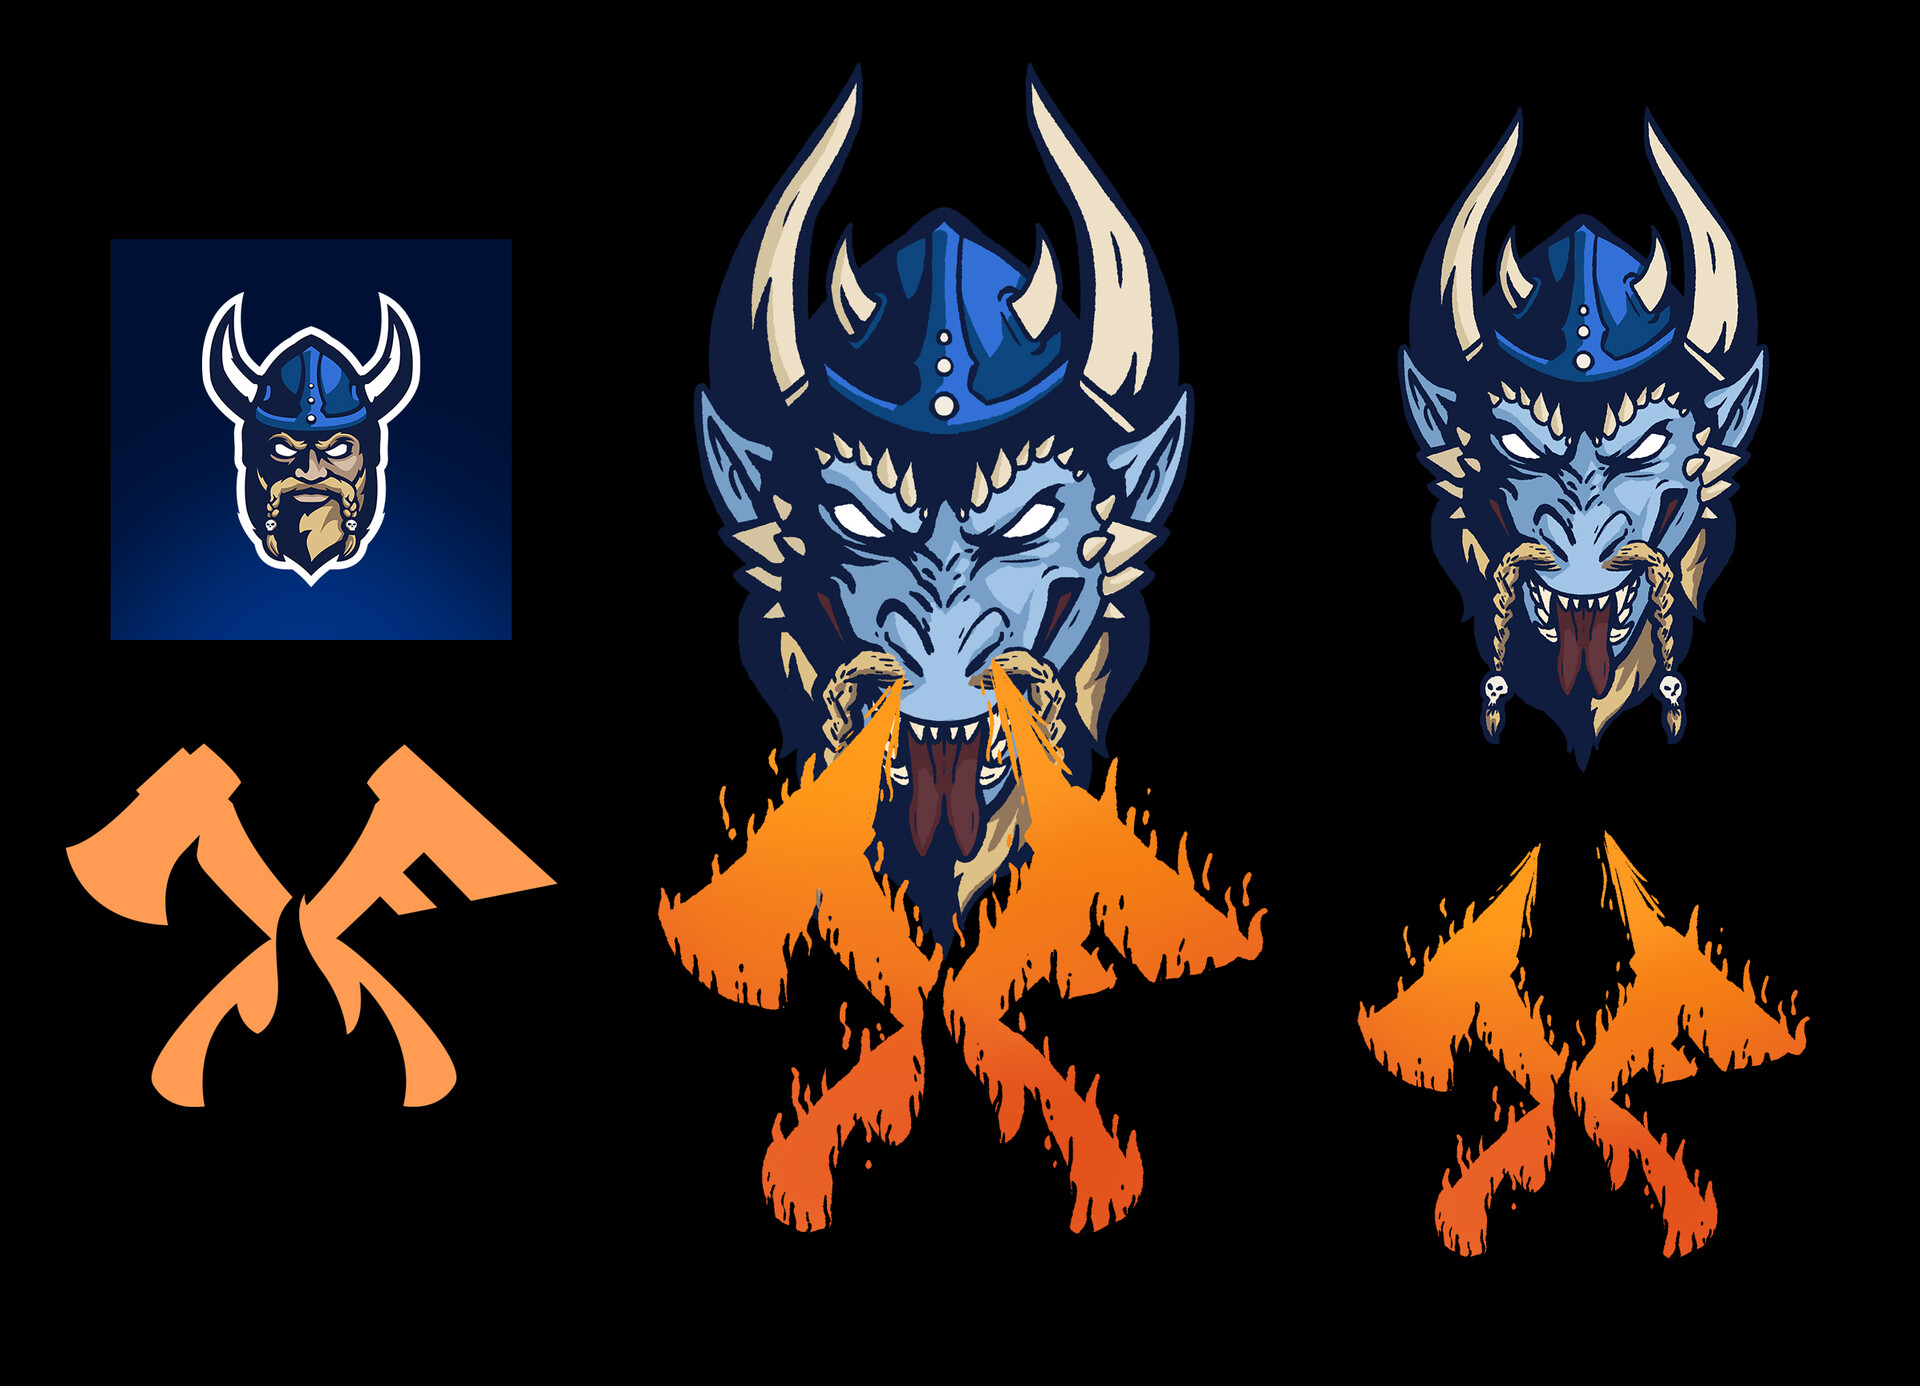 For esports org Fury, they worked with me to re design their pre existing logos (two left designs) for part of a temporary re branding on April Fools 2020.